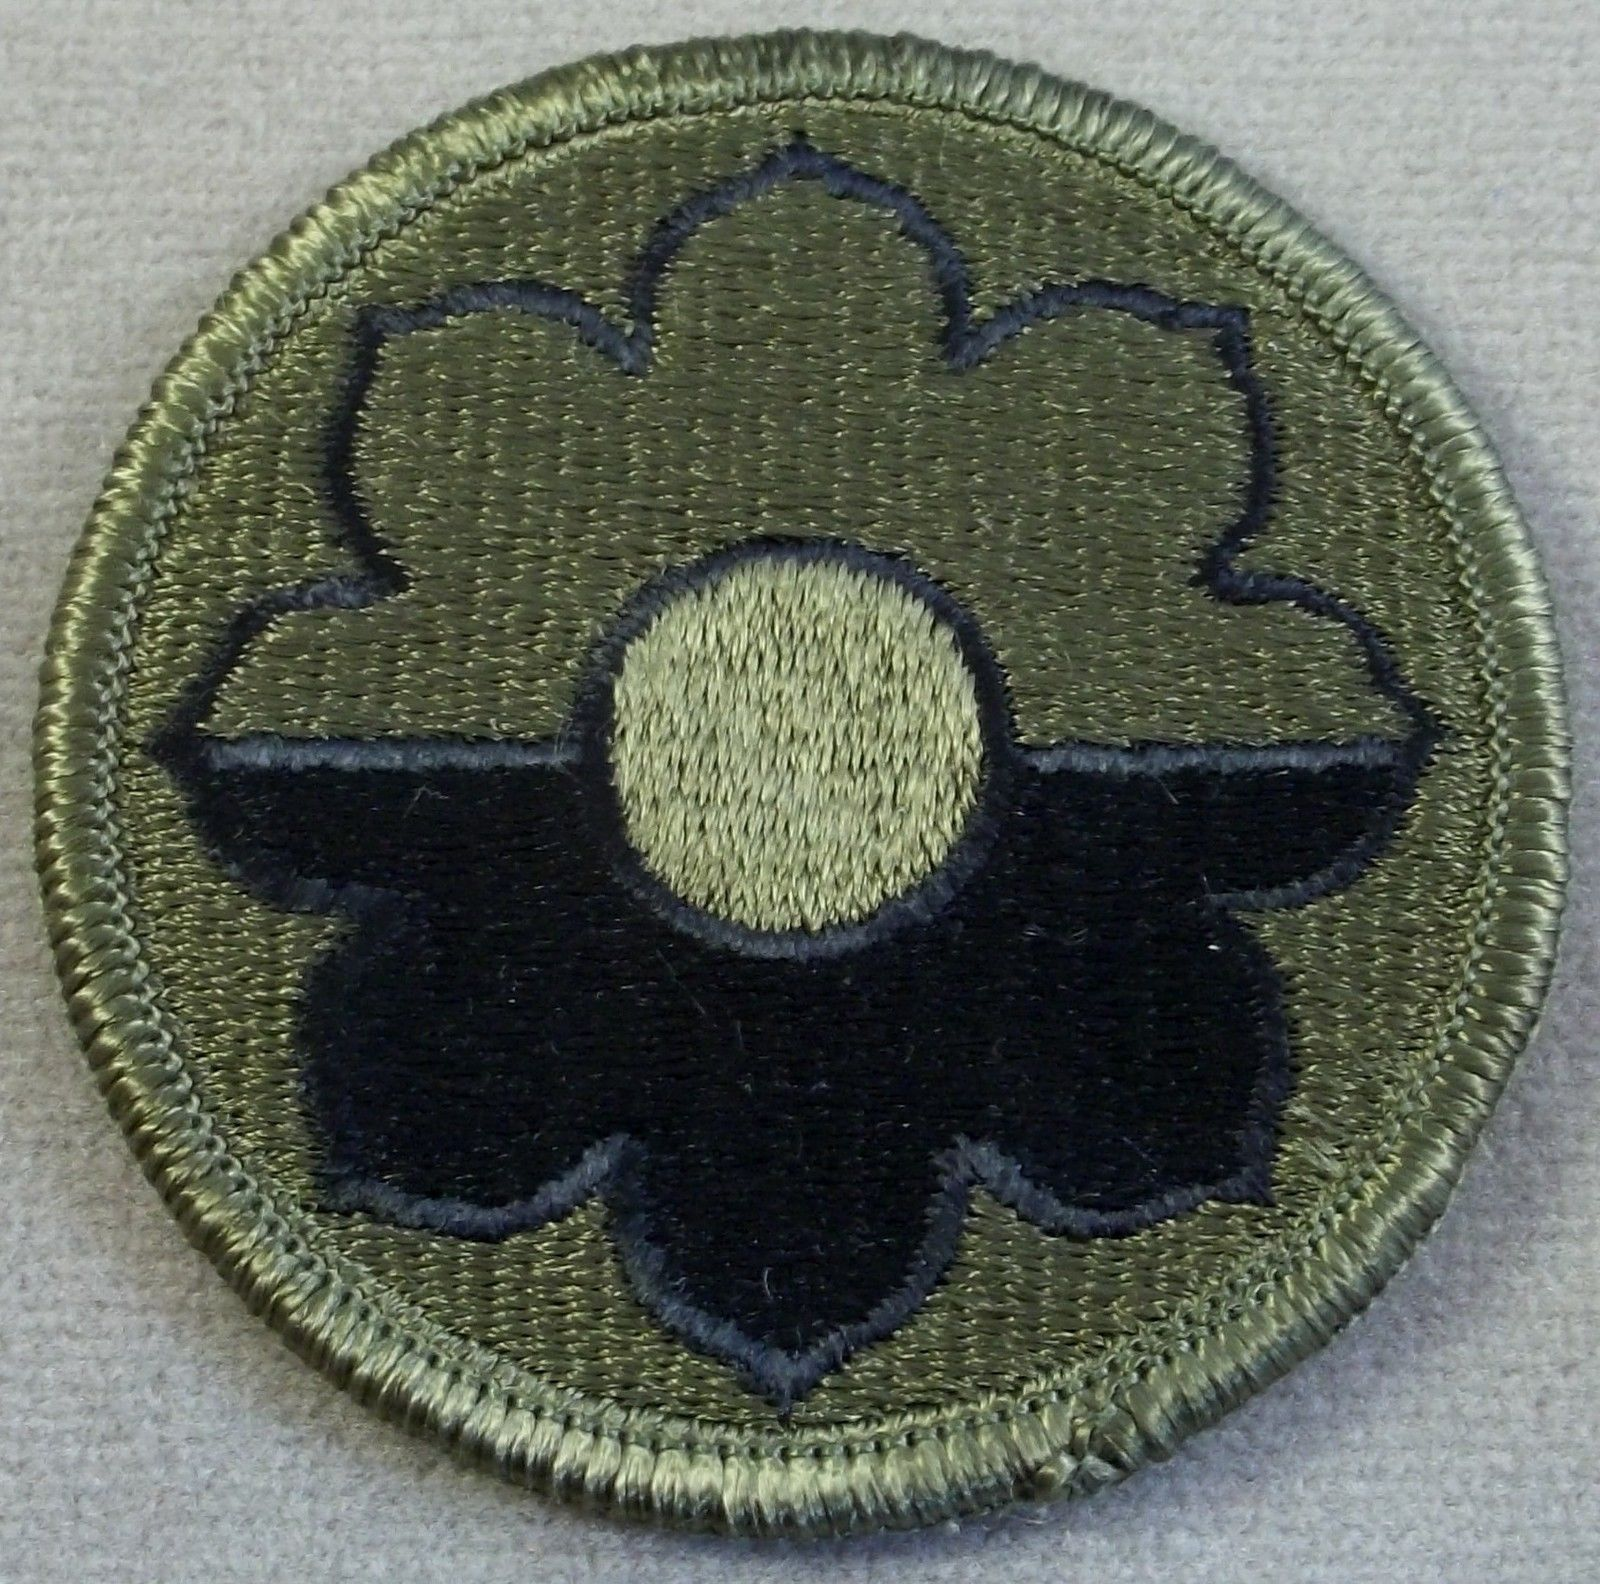 US Army 9th Infantry Division Subdued Merrowed Edge Patch